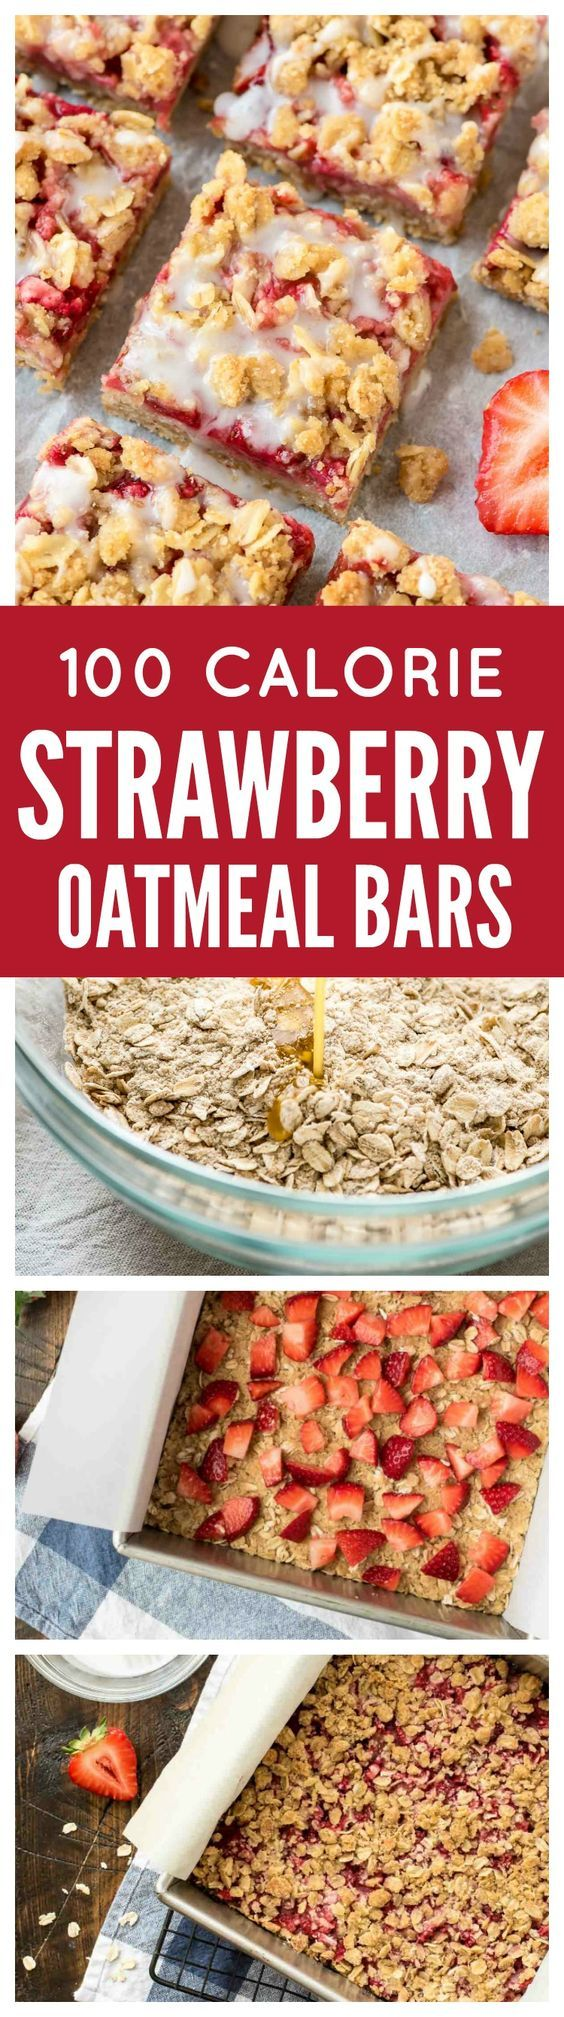 These buttery Strawberry Oatmeal Bars are only 100 CALORIES EACH!! With a buttery crust, sweet strawberry filling, and delicious crumb topping, they make wonderful dessert bars to take to a party or potluck but are healthy enough for a snack. So easy even kids can make them! Recipe from wellplated.com @wellplated